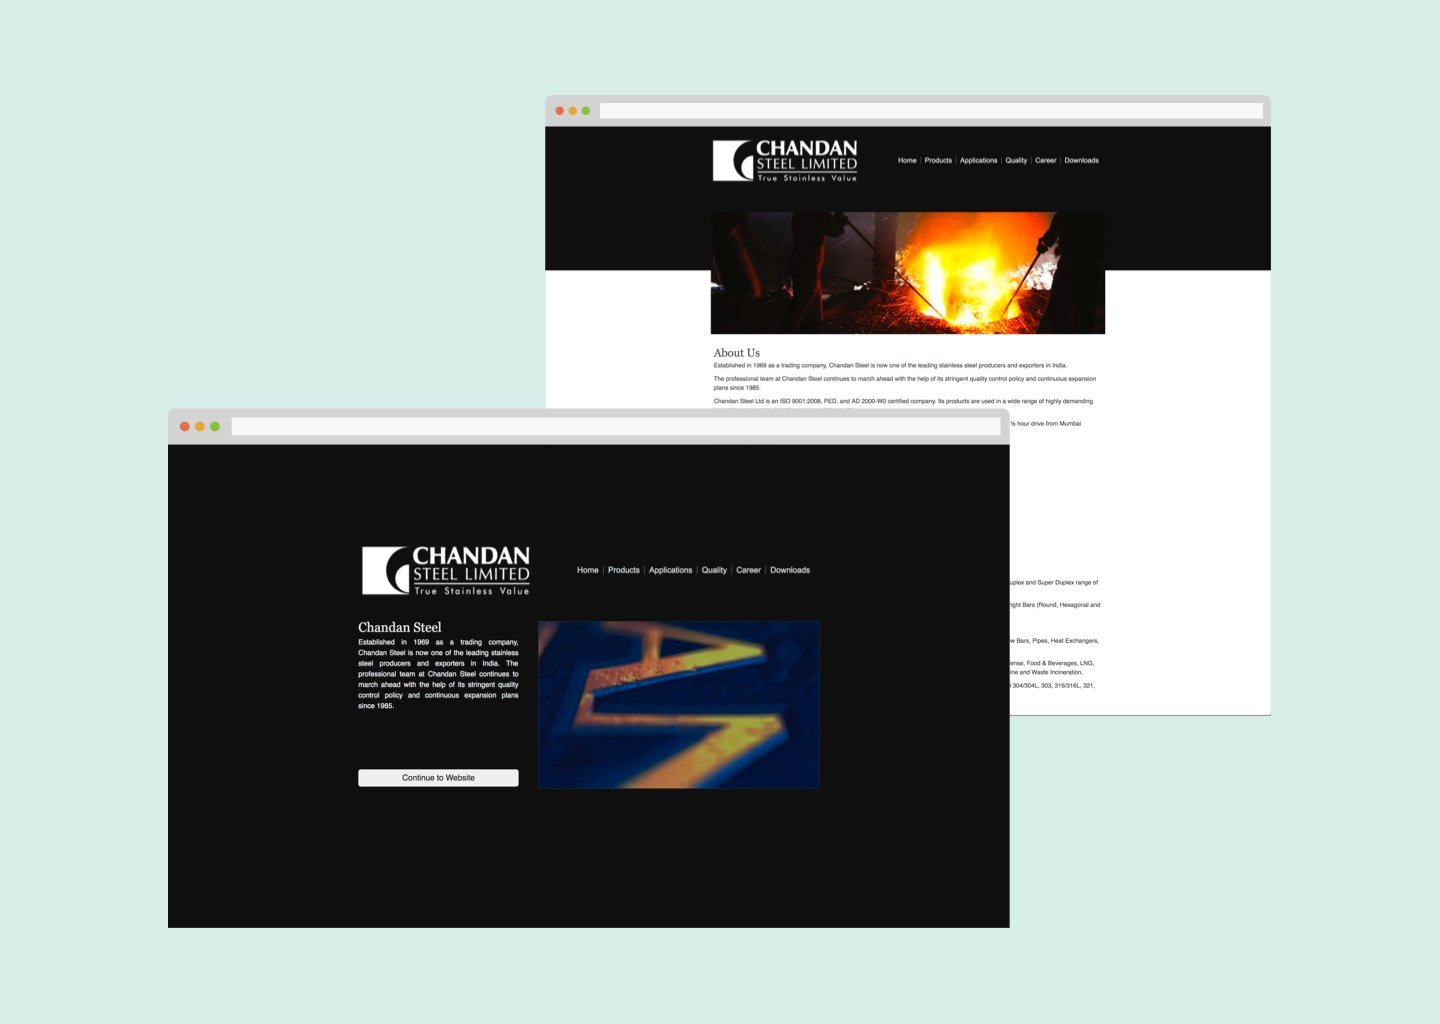 Chandan Steels Old Website Re-design